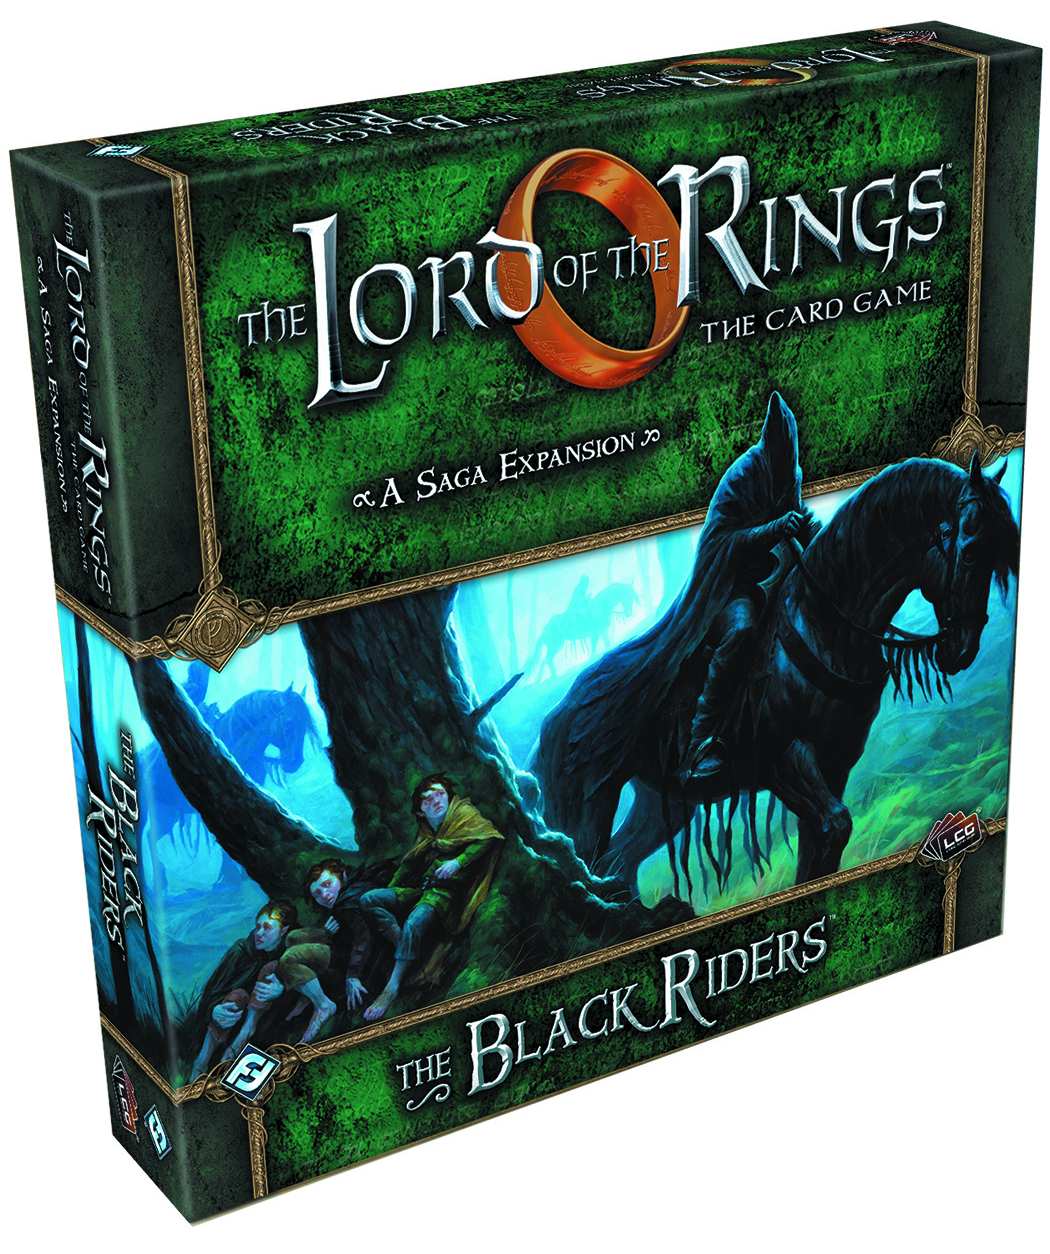 LORD RINGS LCG BLACK RIDERS EXPANSION